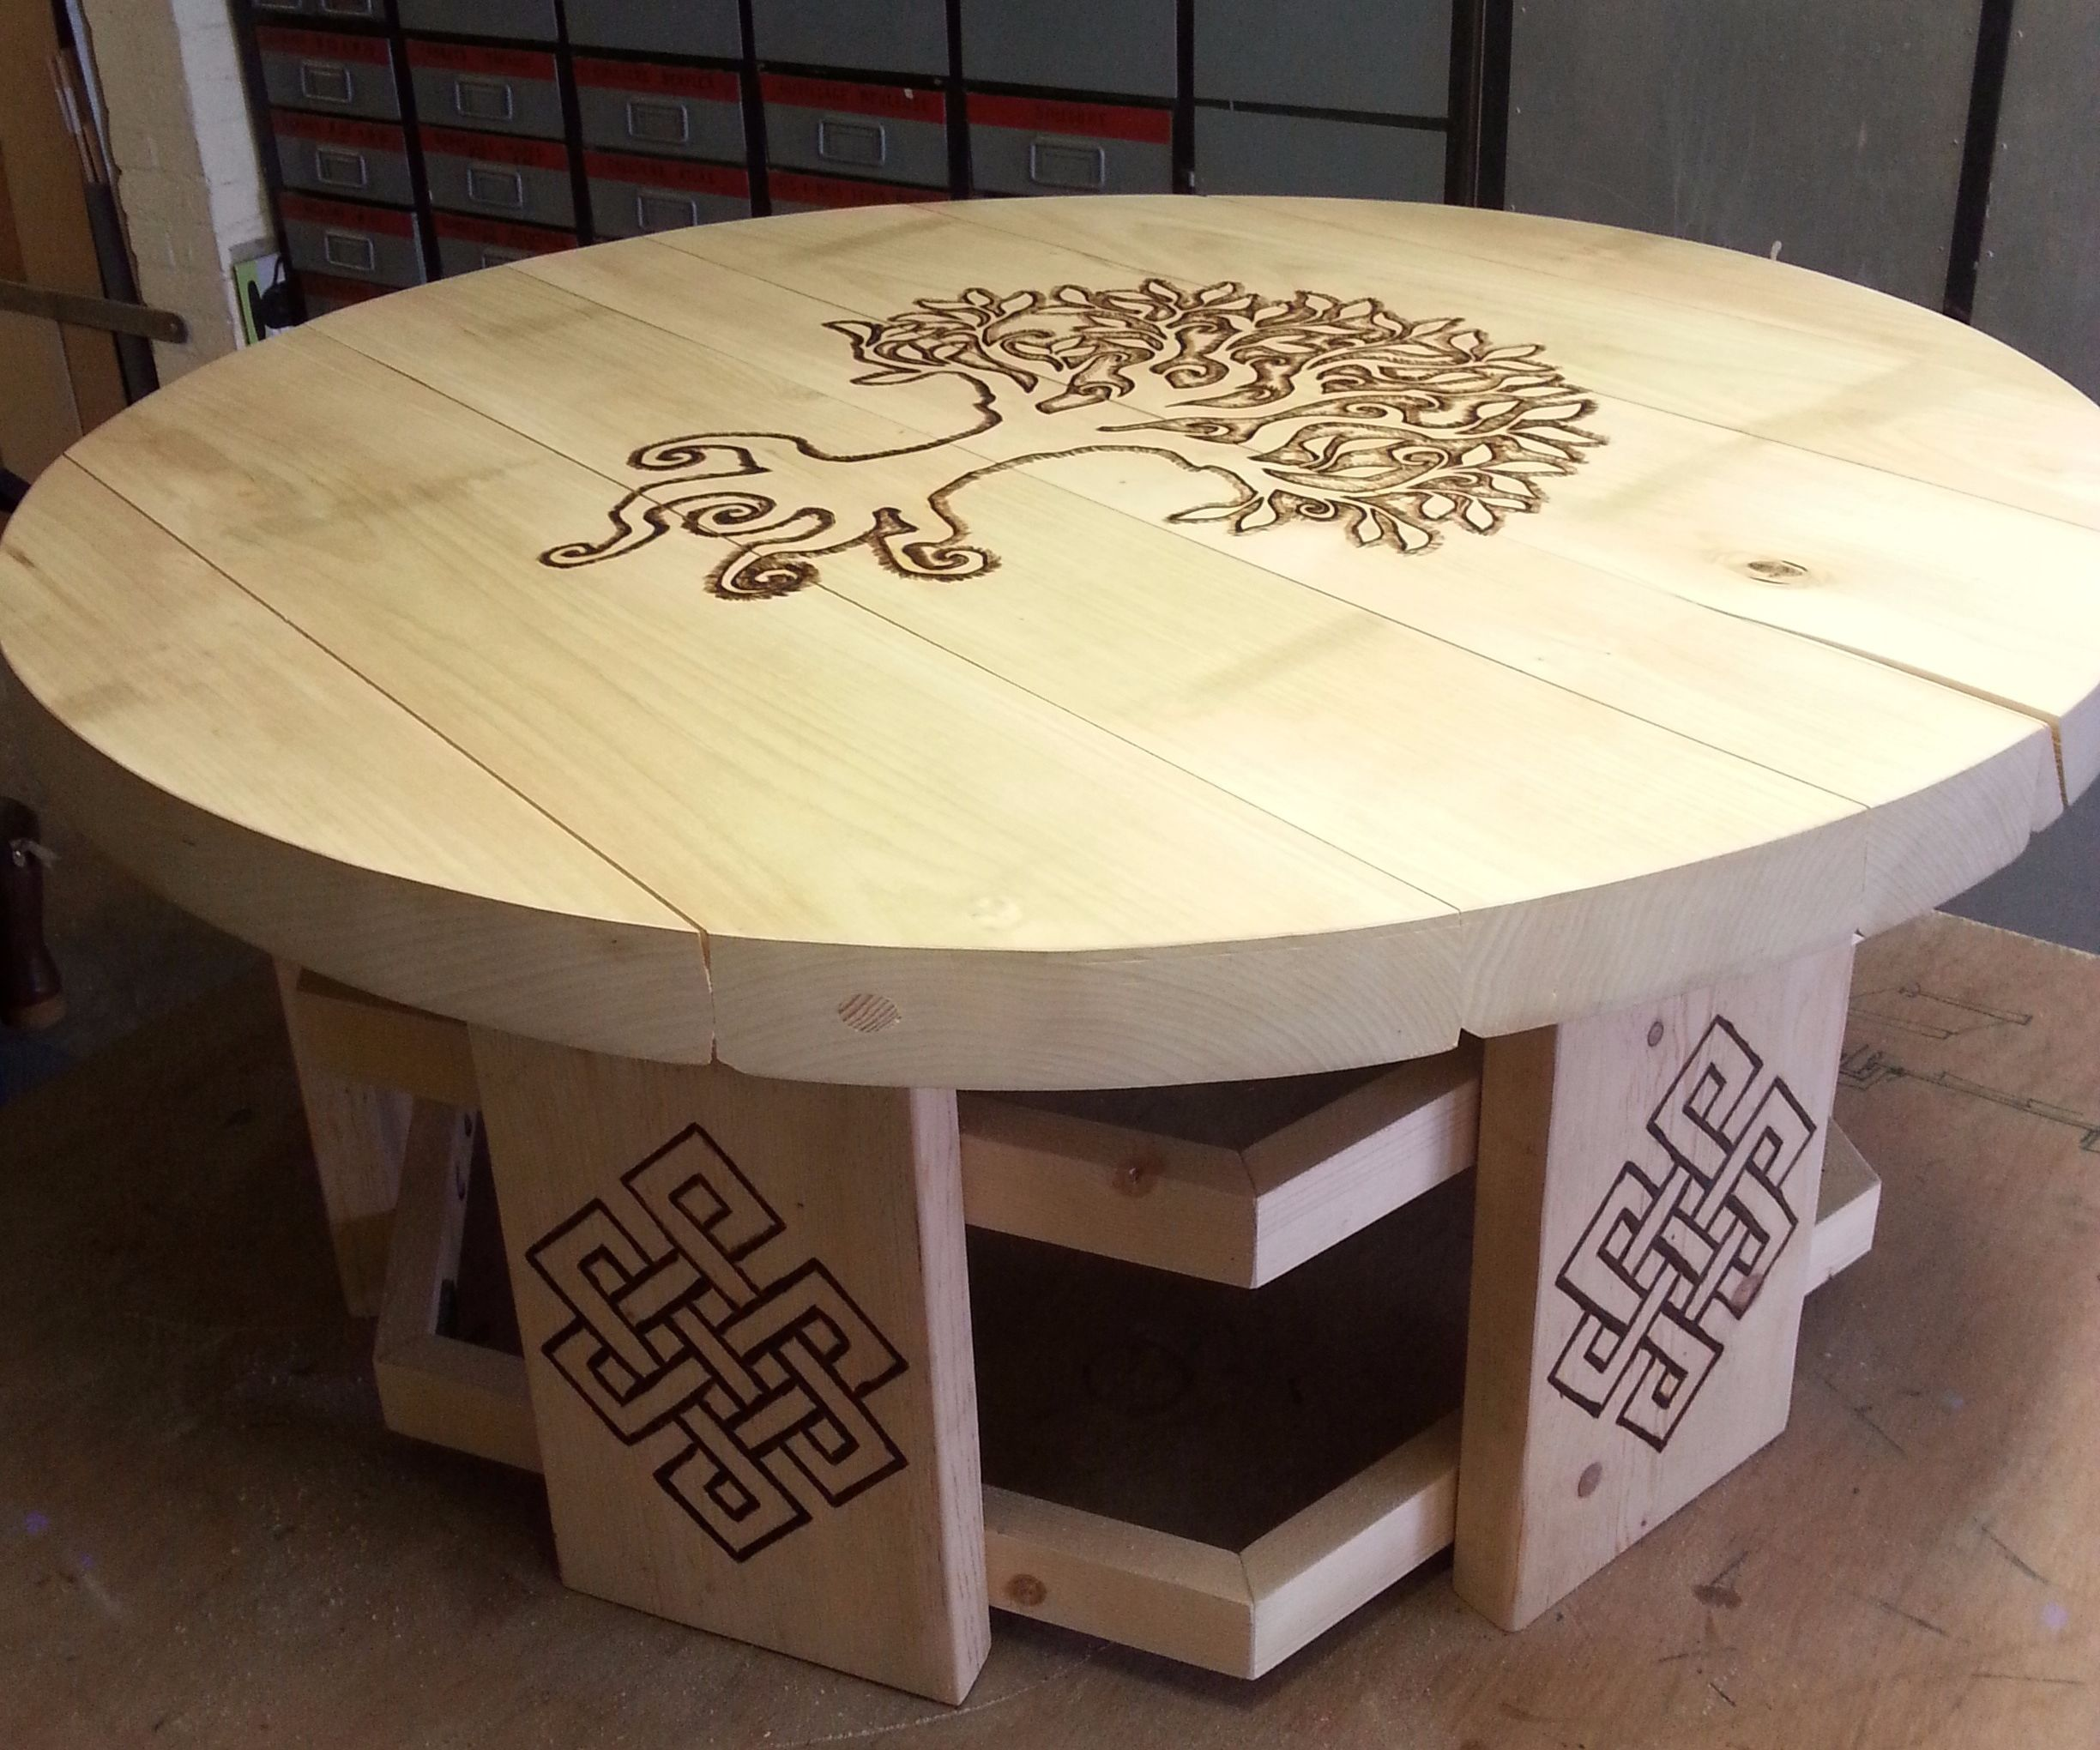 engrave Tavern table